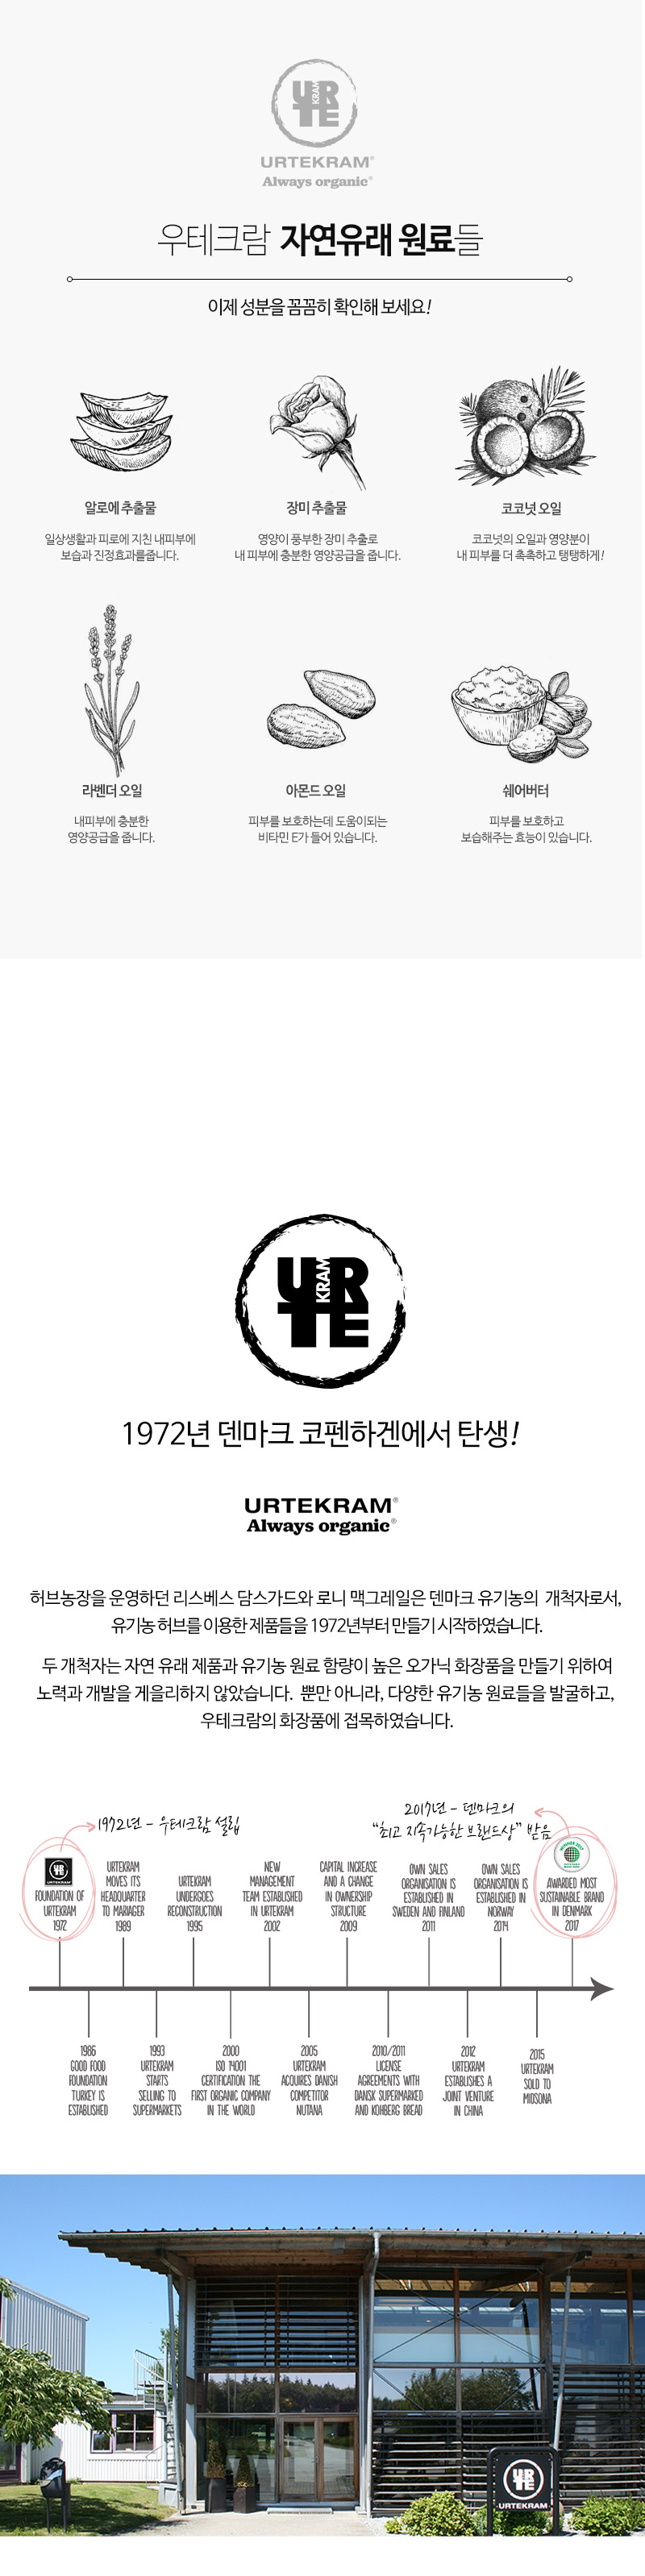 urtekram_handcream_08.jpg